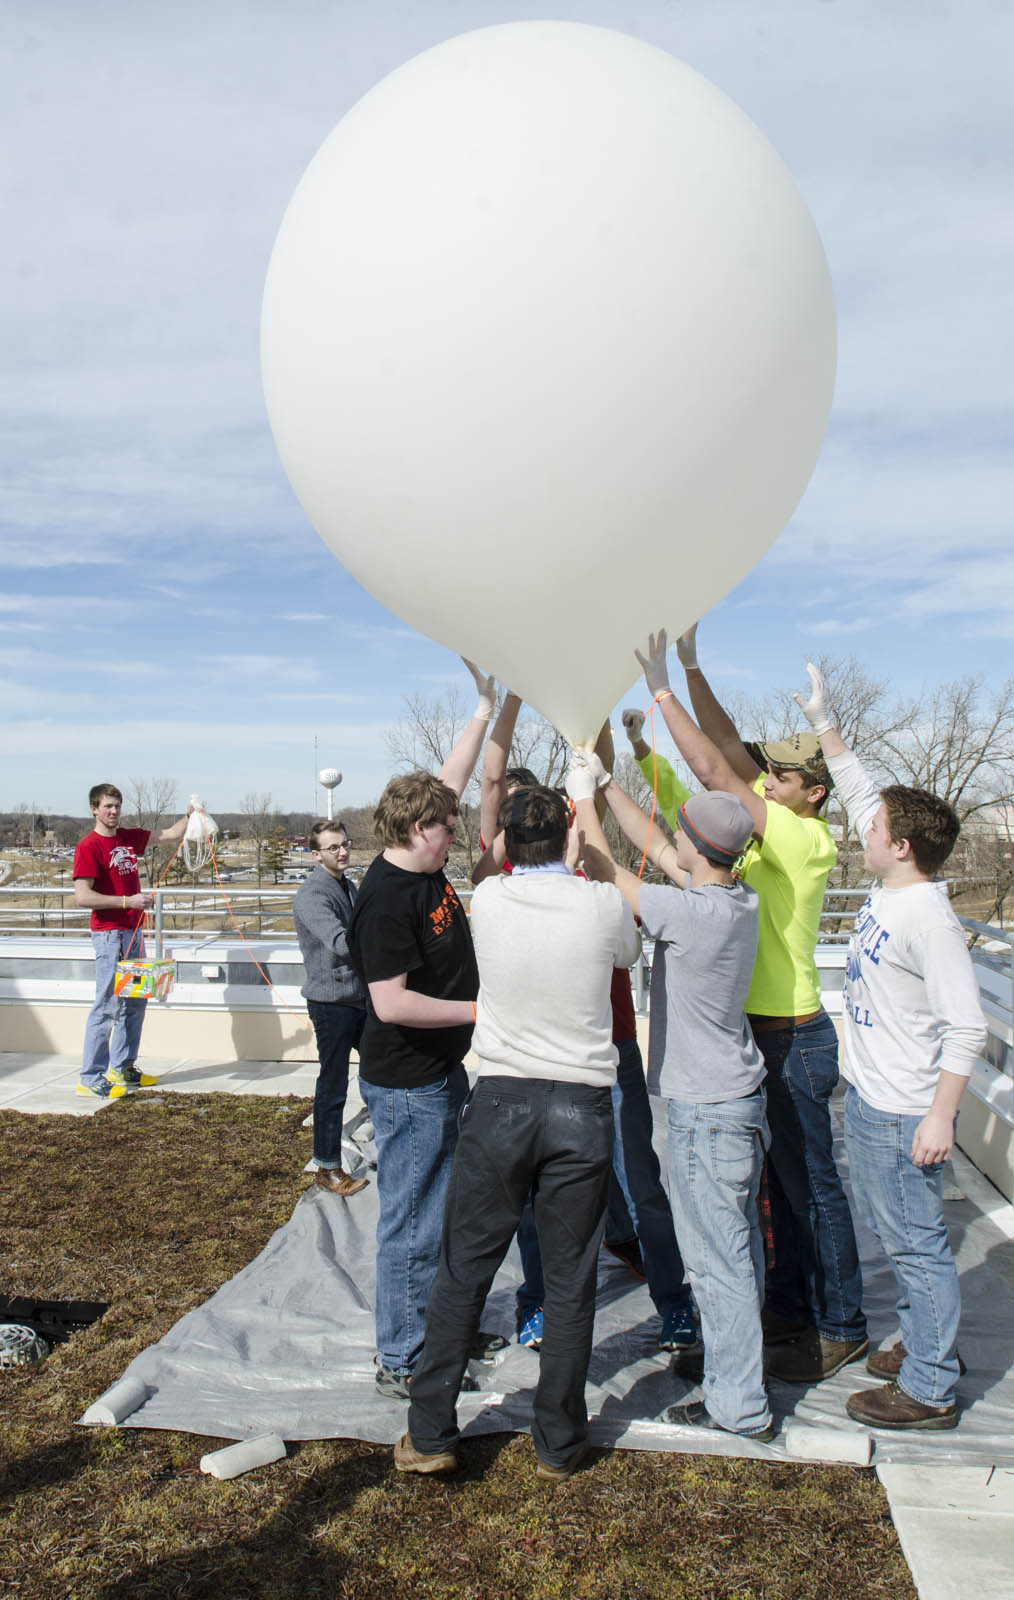 Engineering Students with a weather balloon.